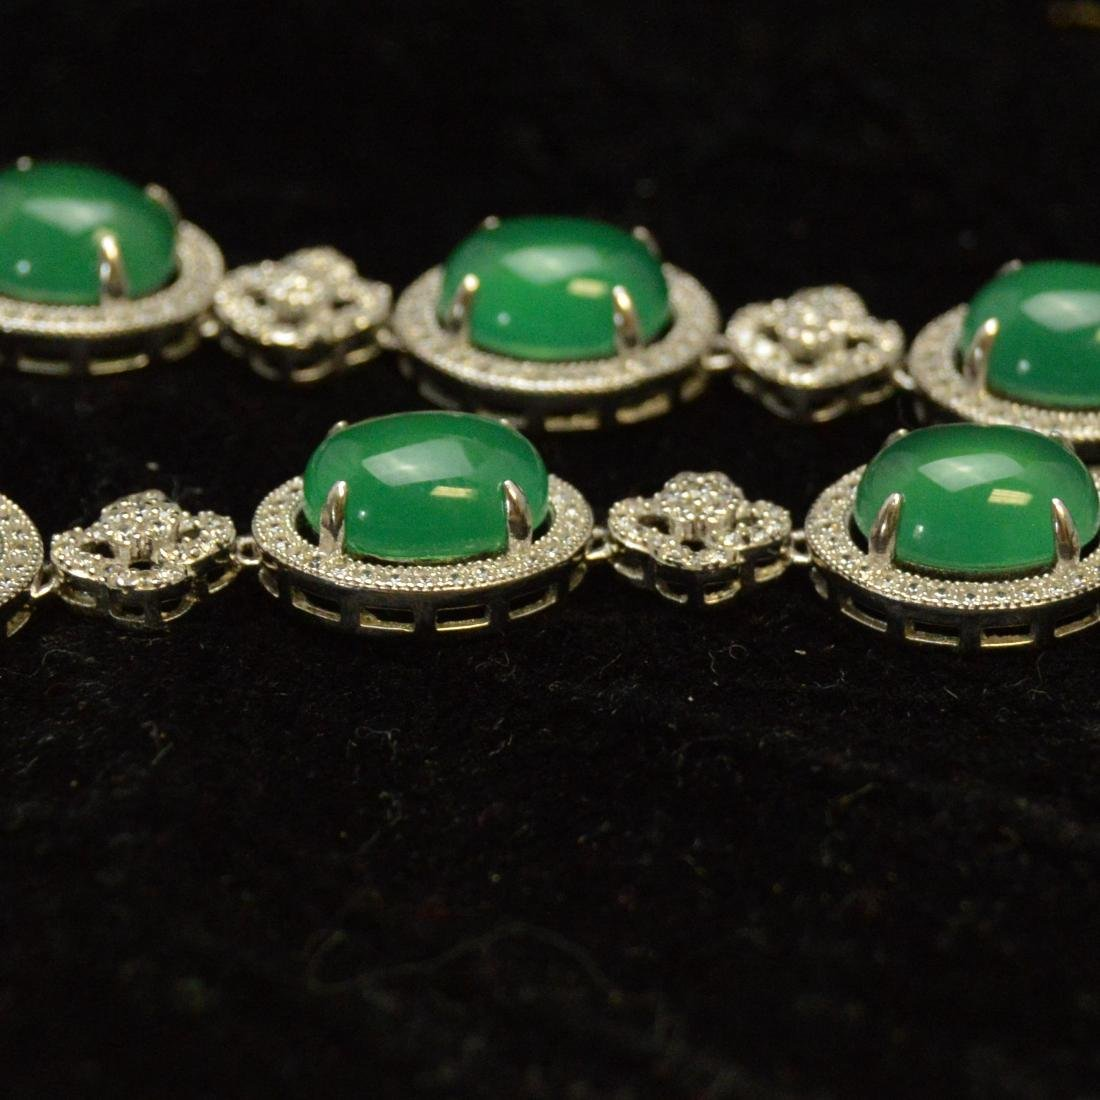 Green Agate Necklace - 3